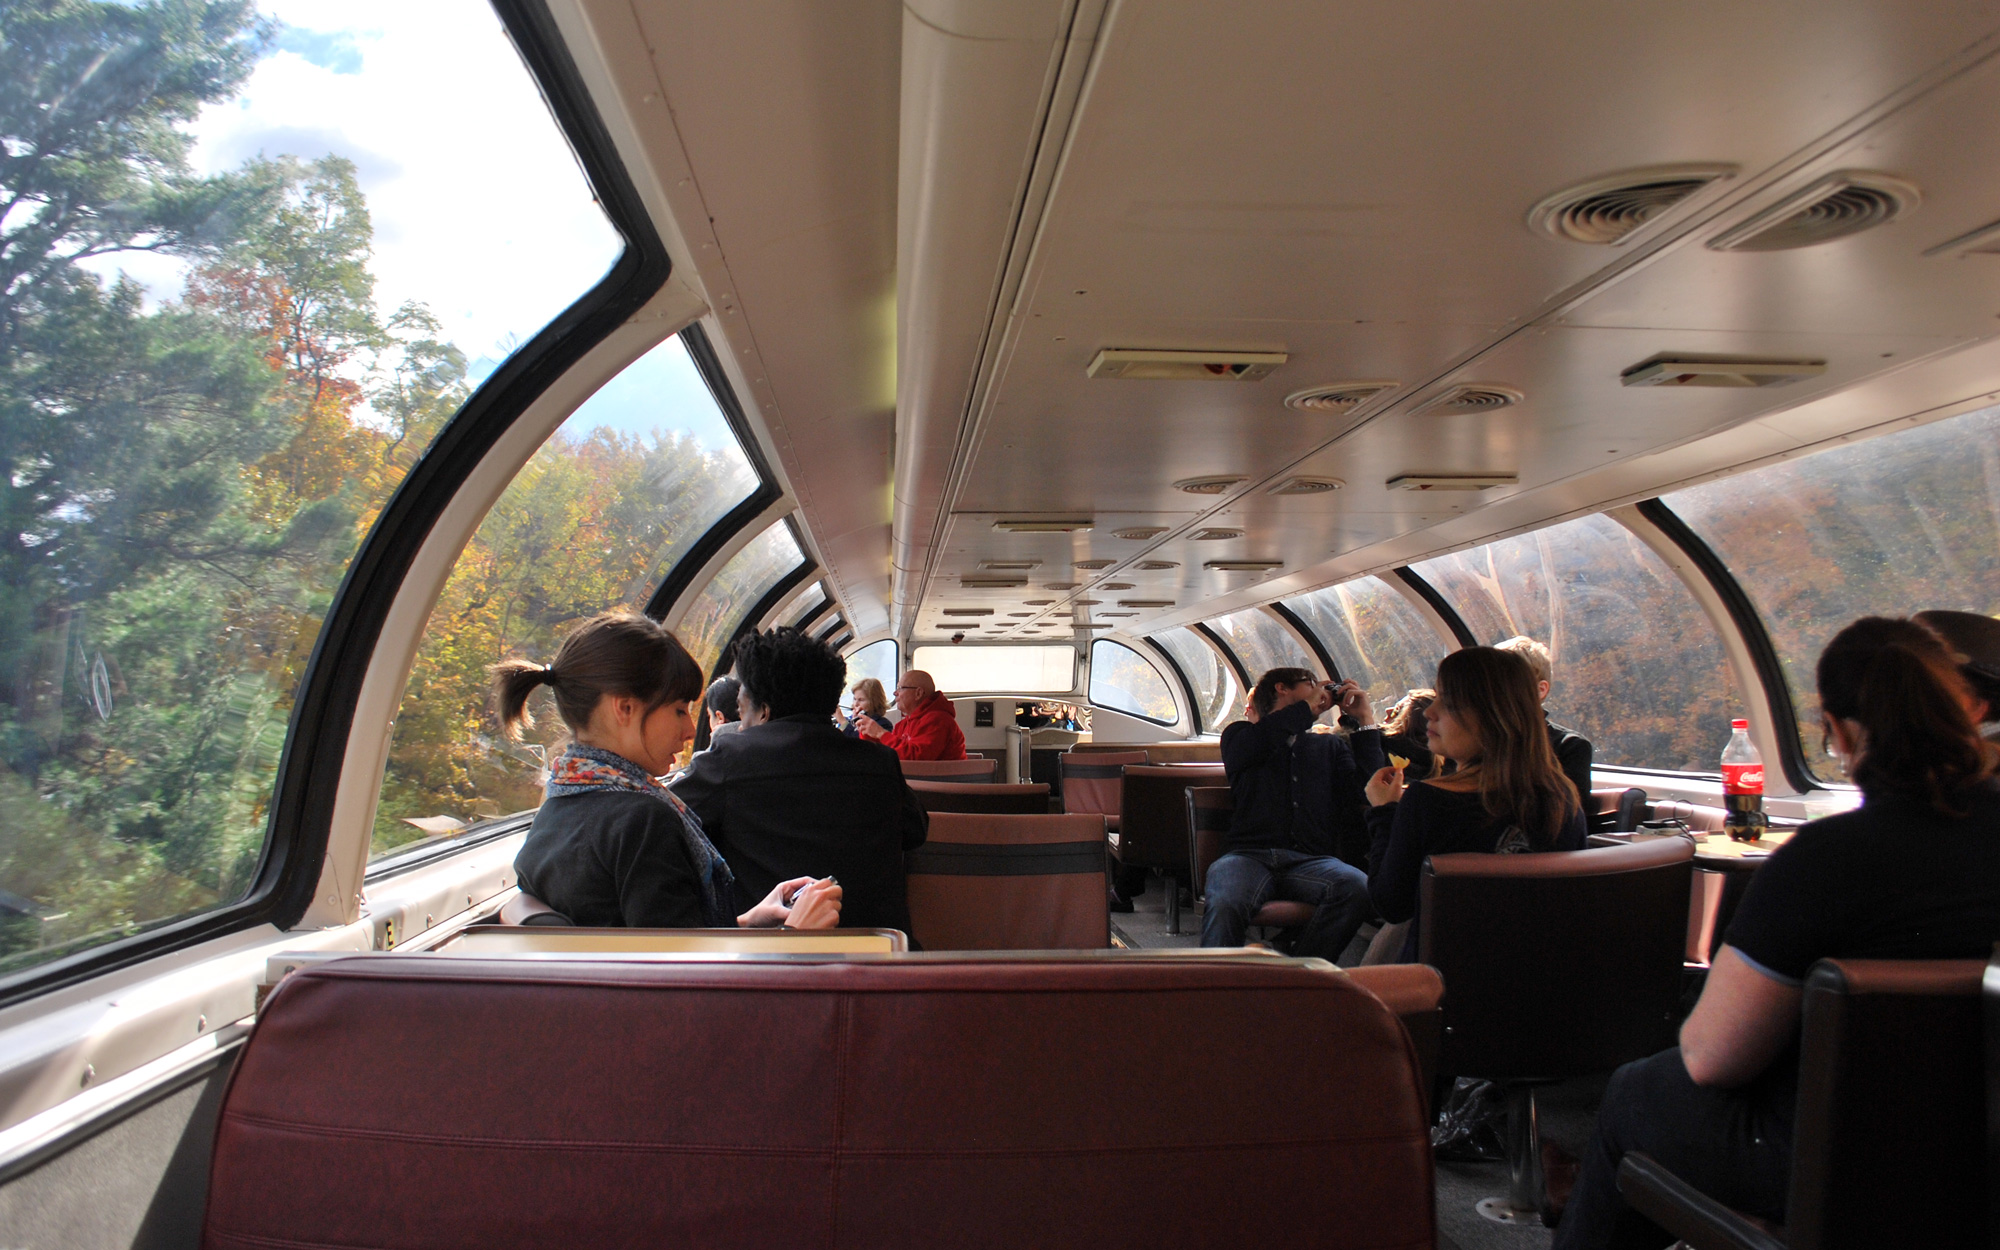 Amtrak Great Dome Car Returns